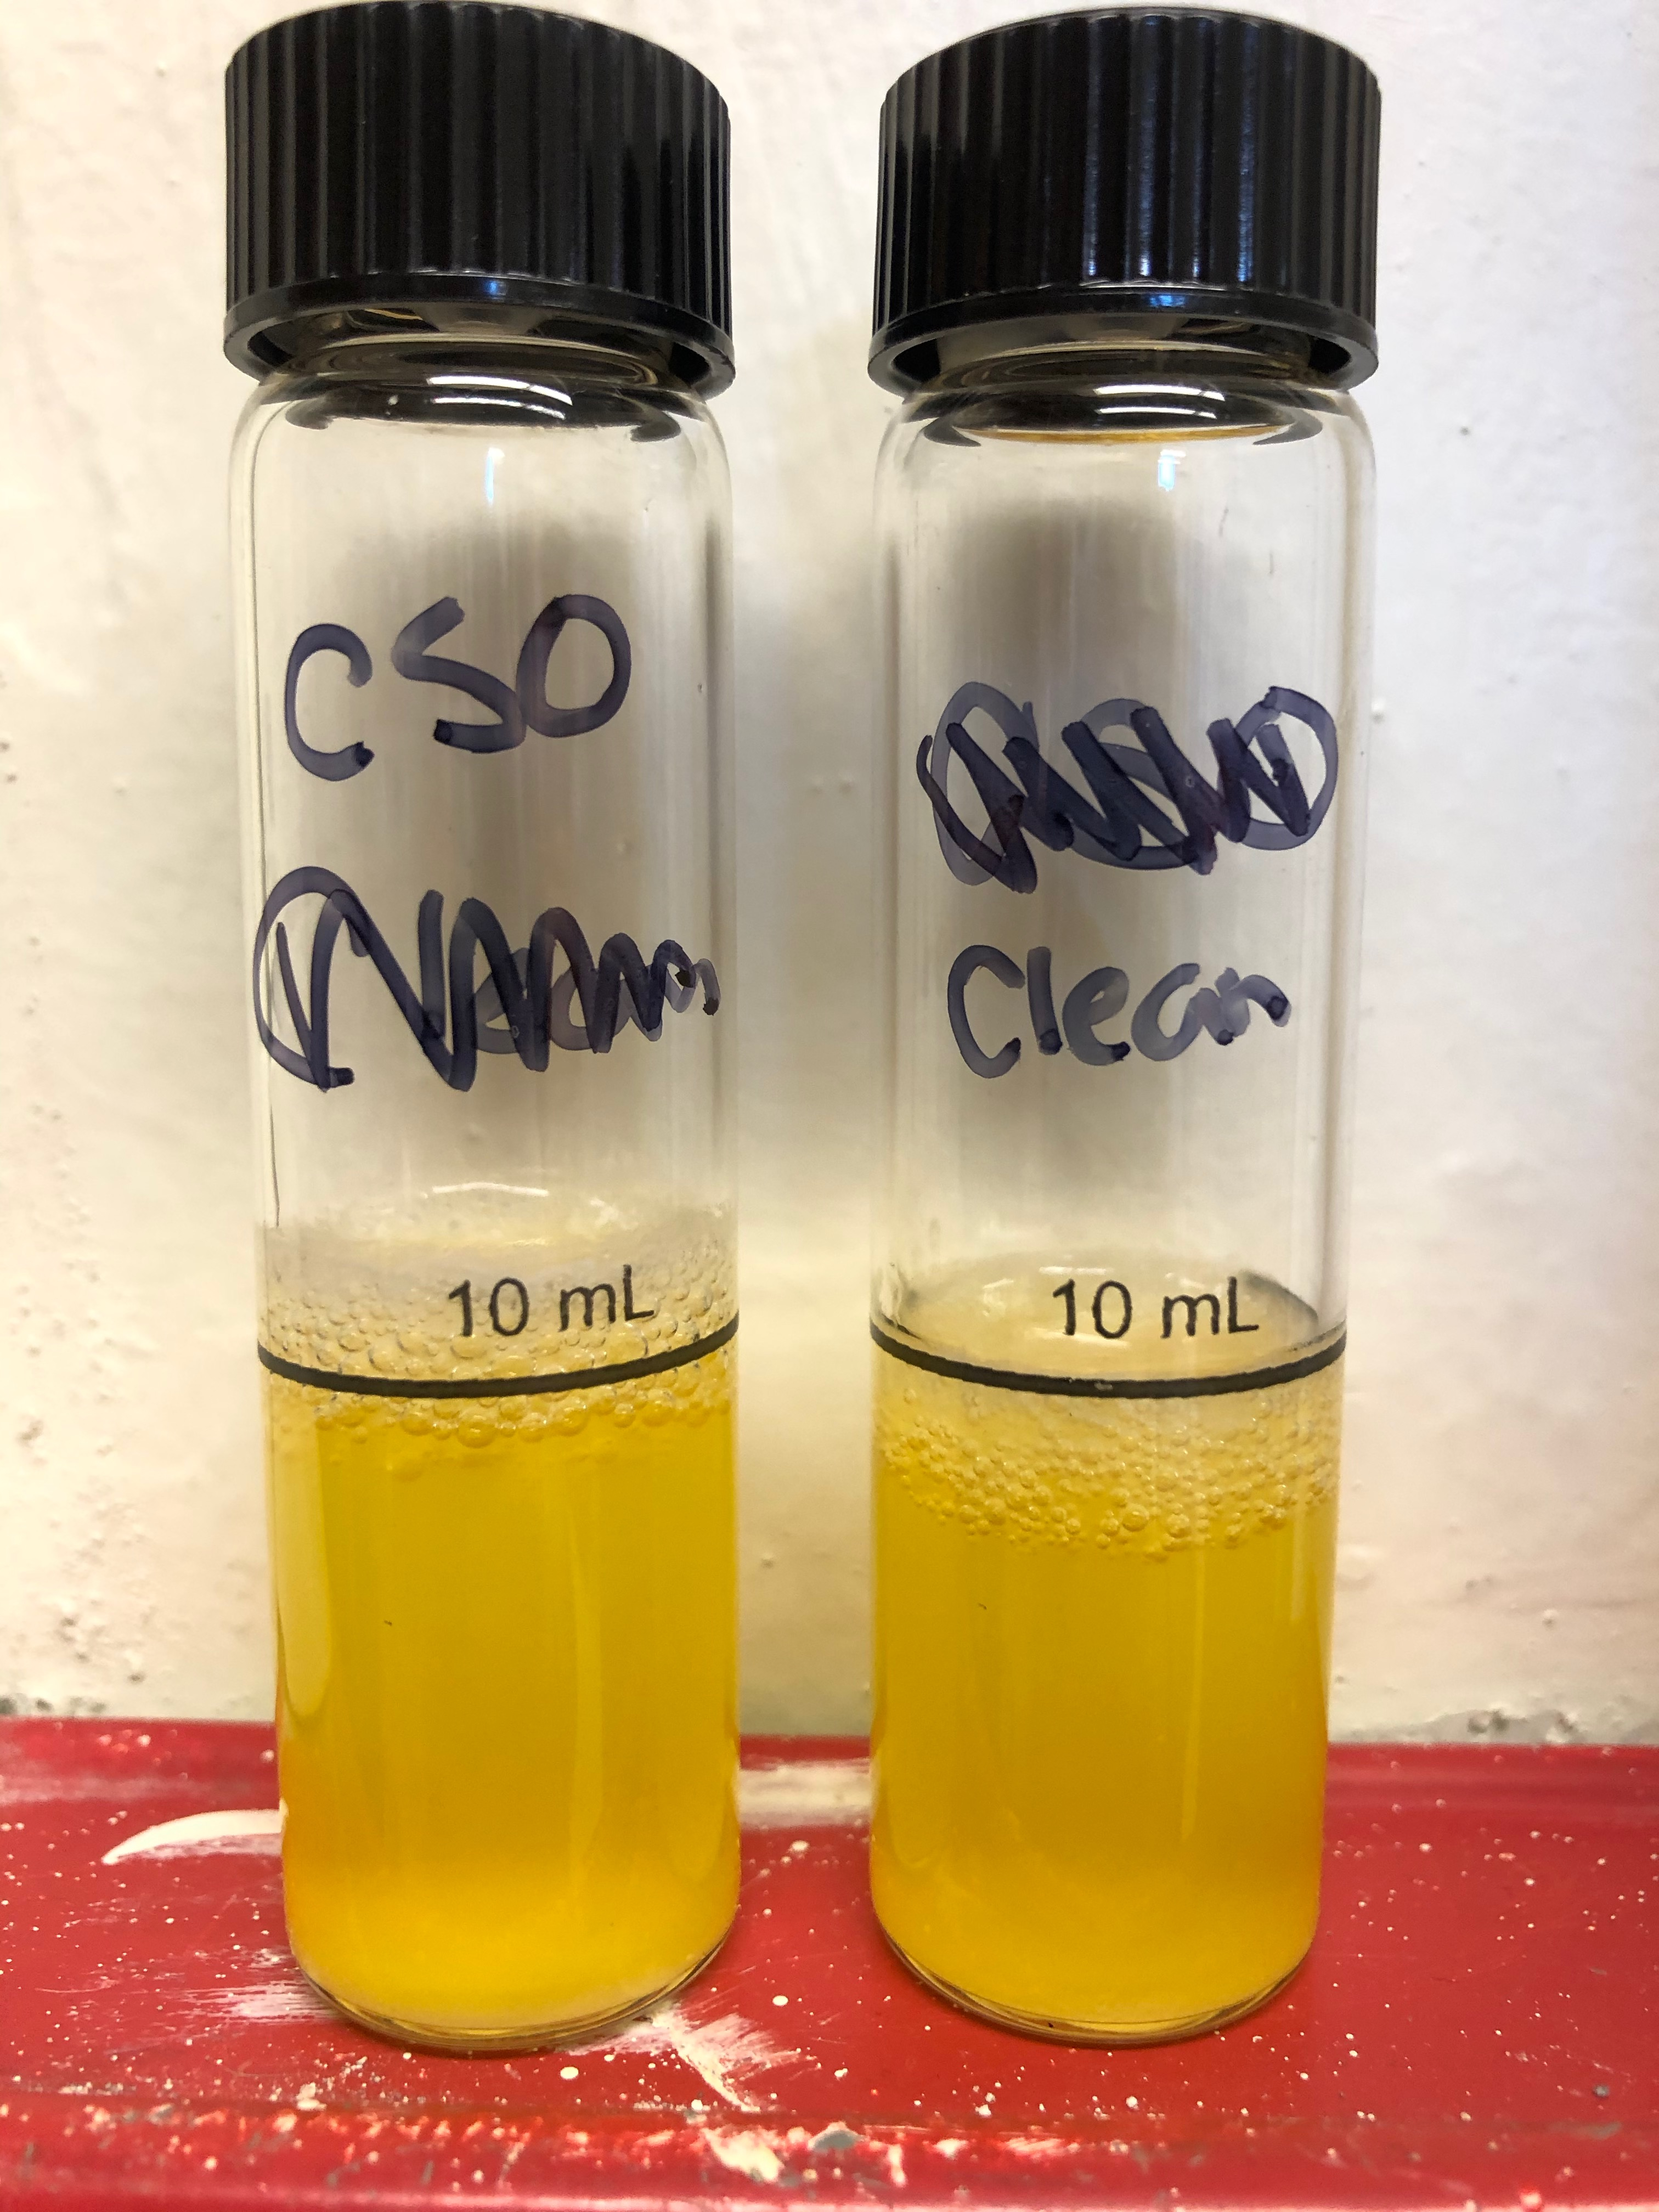 Combined sewer outflow (left) and upstream samples (right) both tested positive (yellow) for the presence and growth of fecal coliform bacteria.